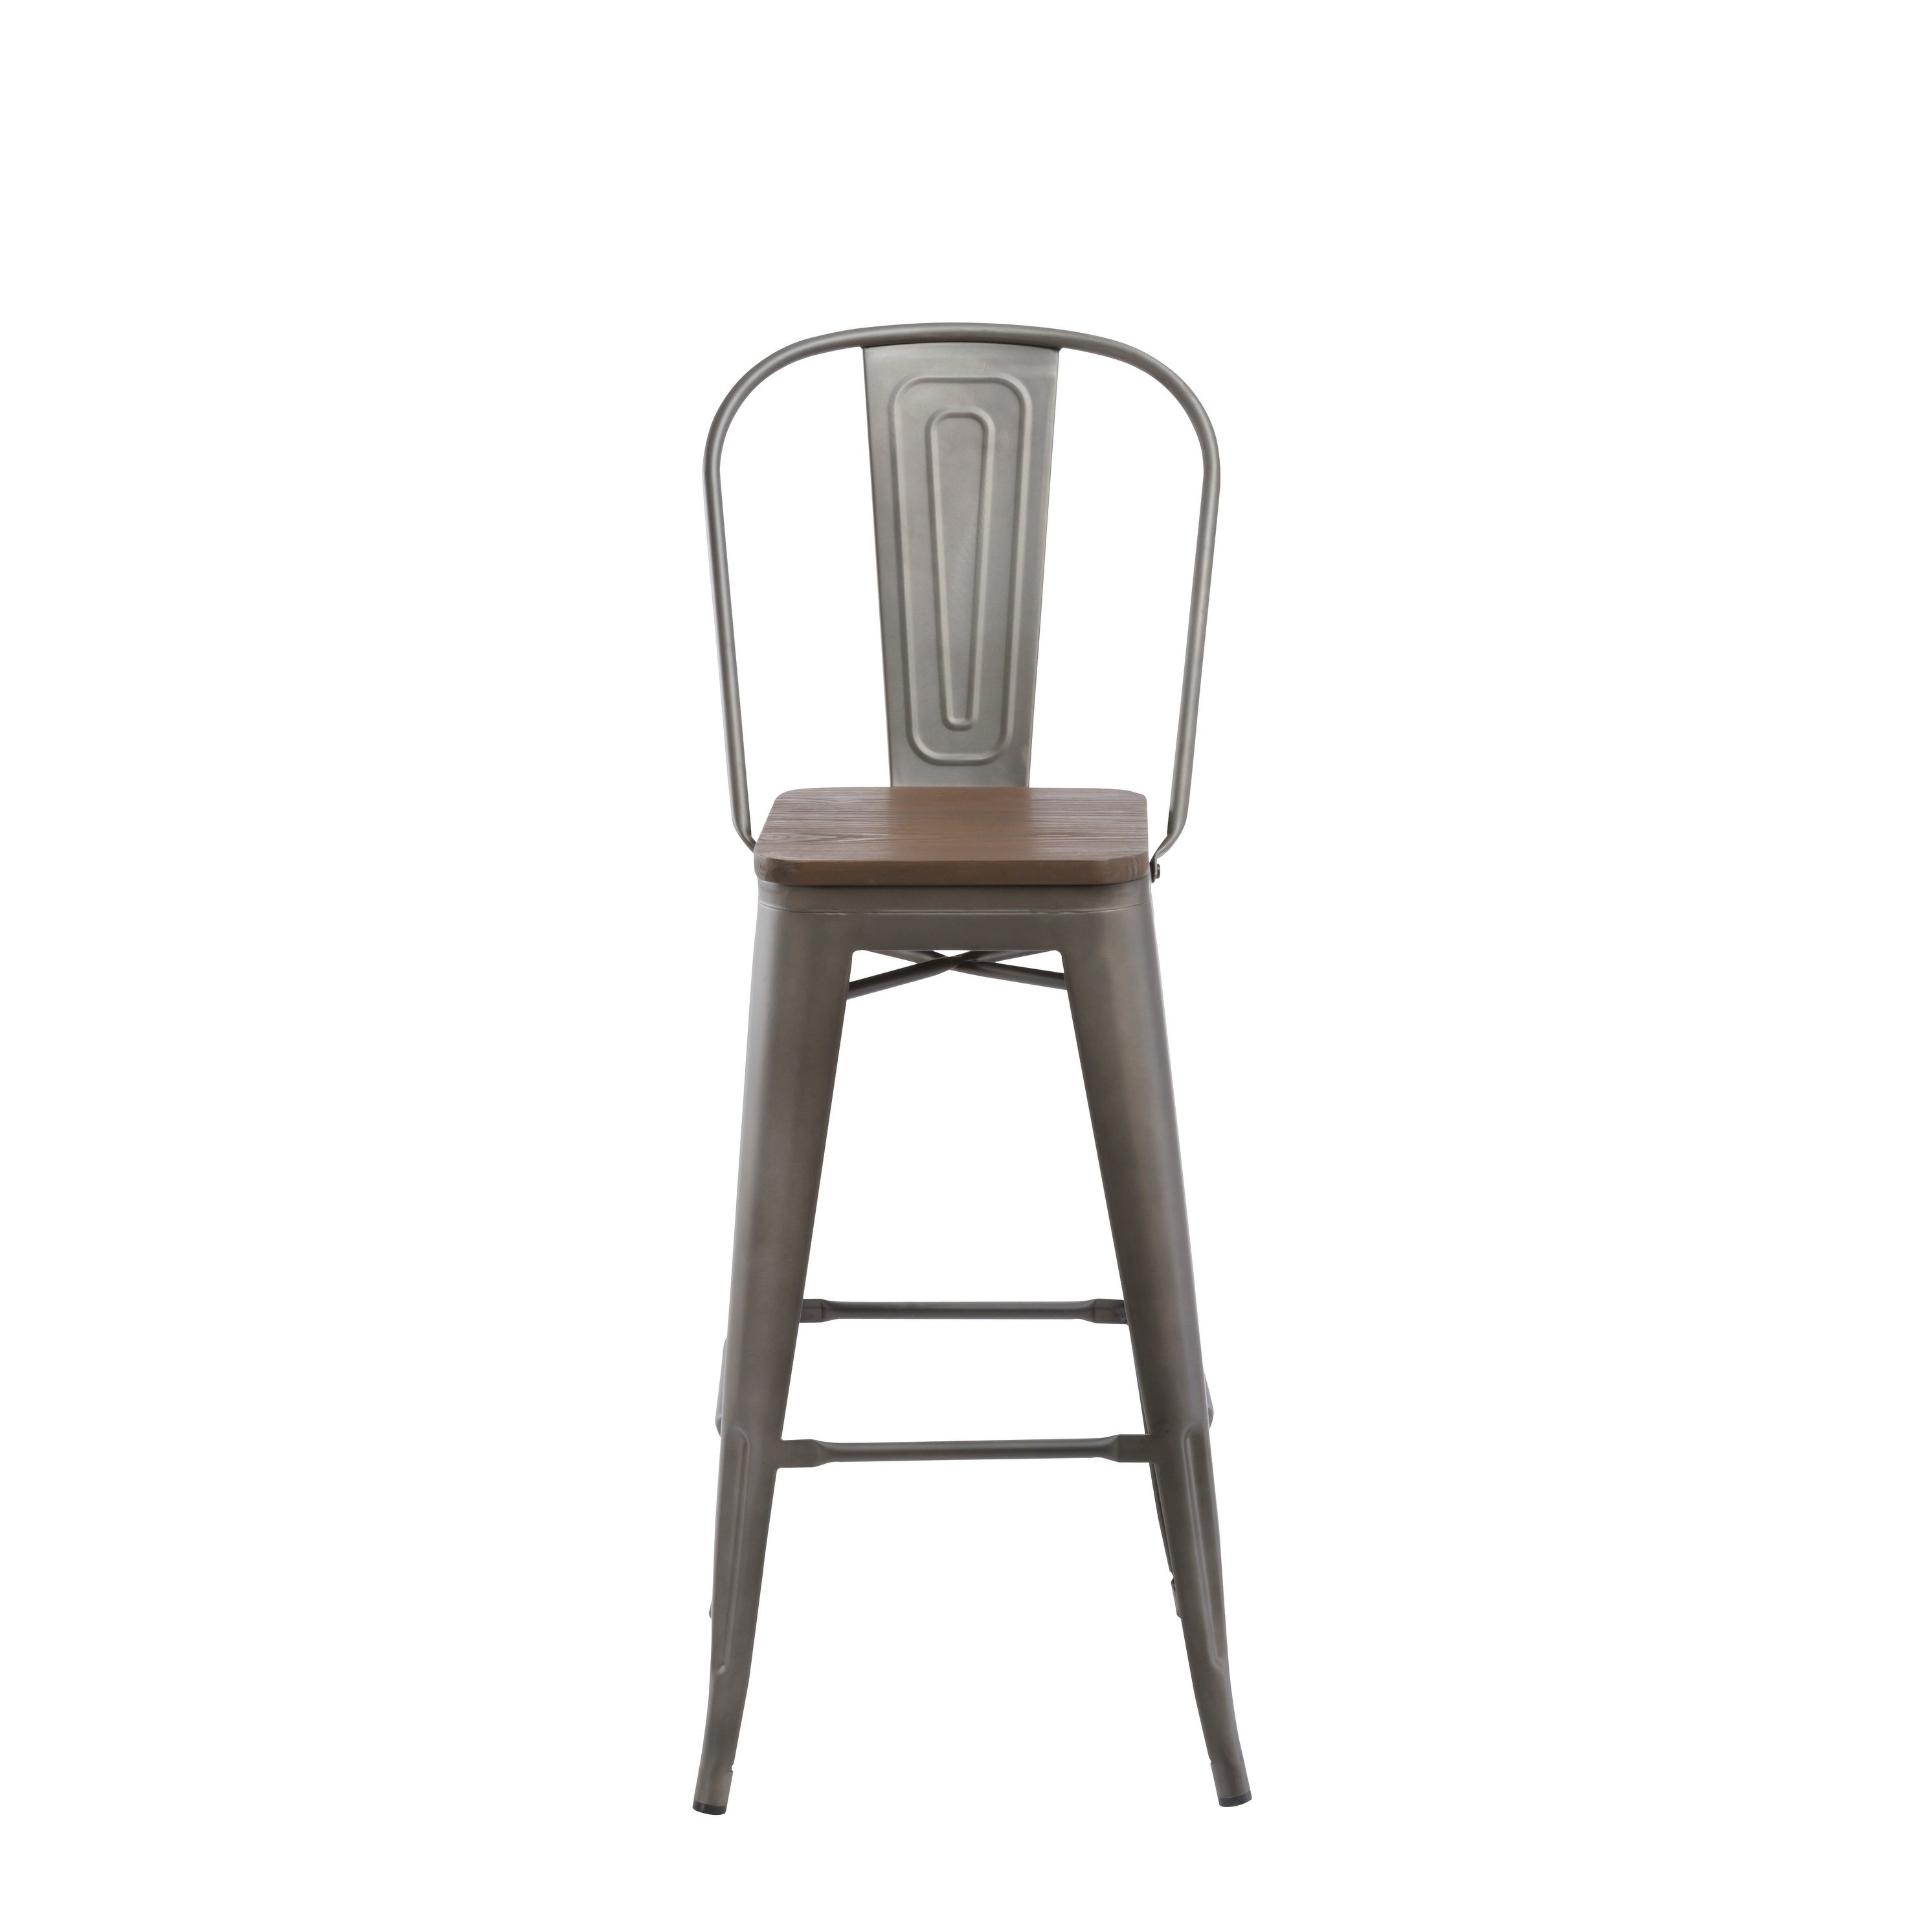 Awesome Antique Bronze Distressed Rustic Wood 30 High Back Chair Bar Stools Pdpeps Interior Chair Design Pdpepsorg